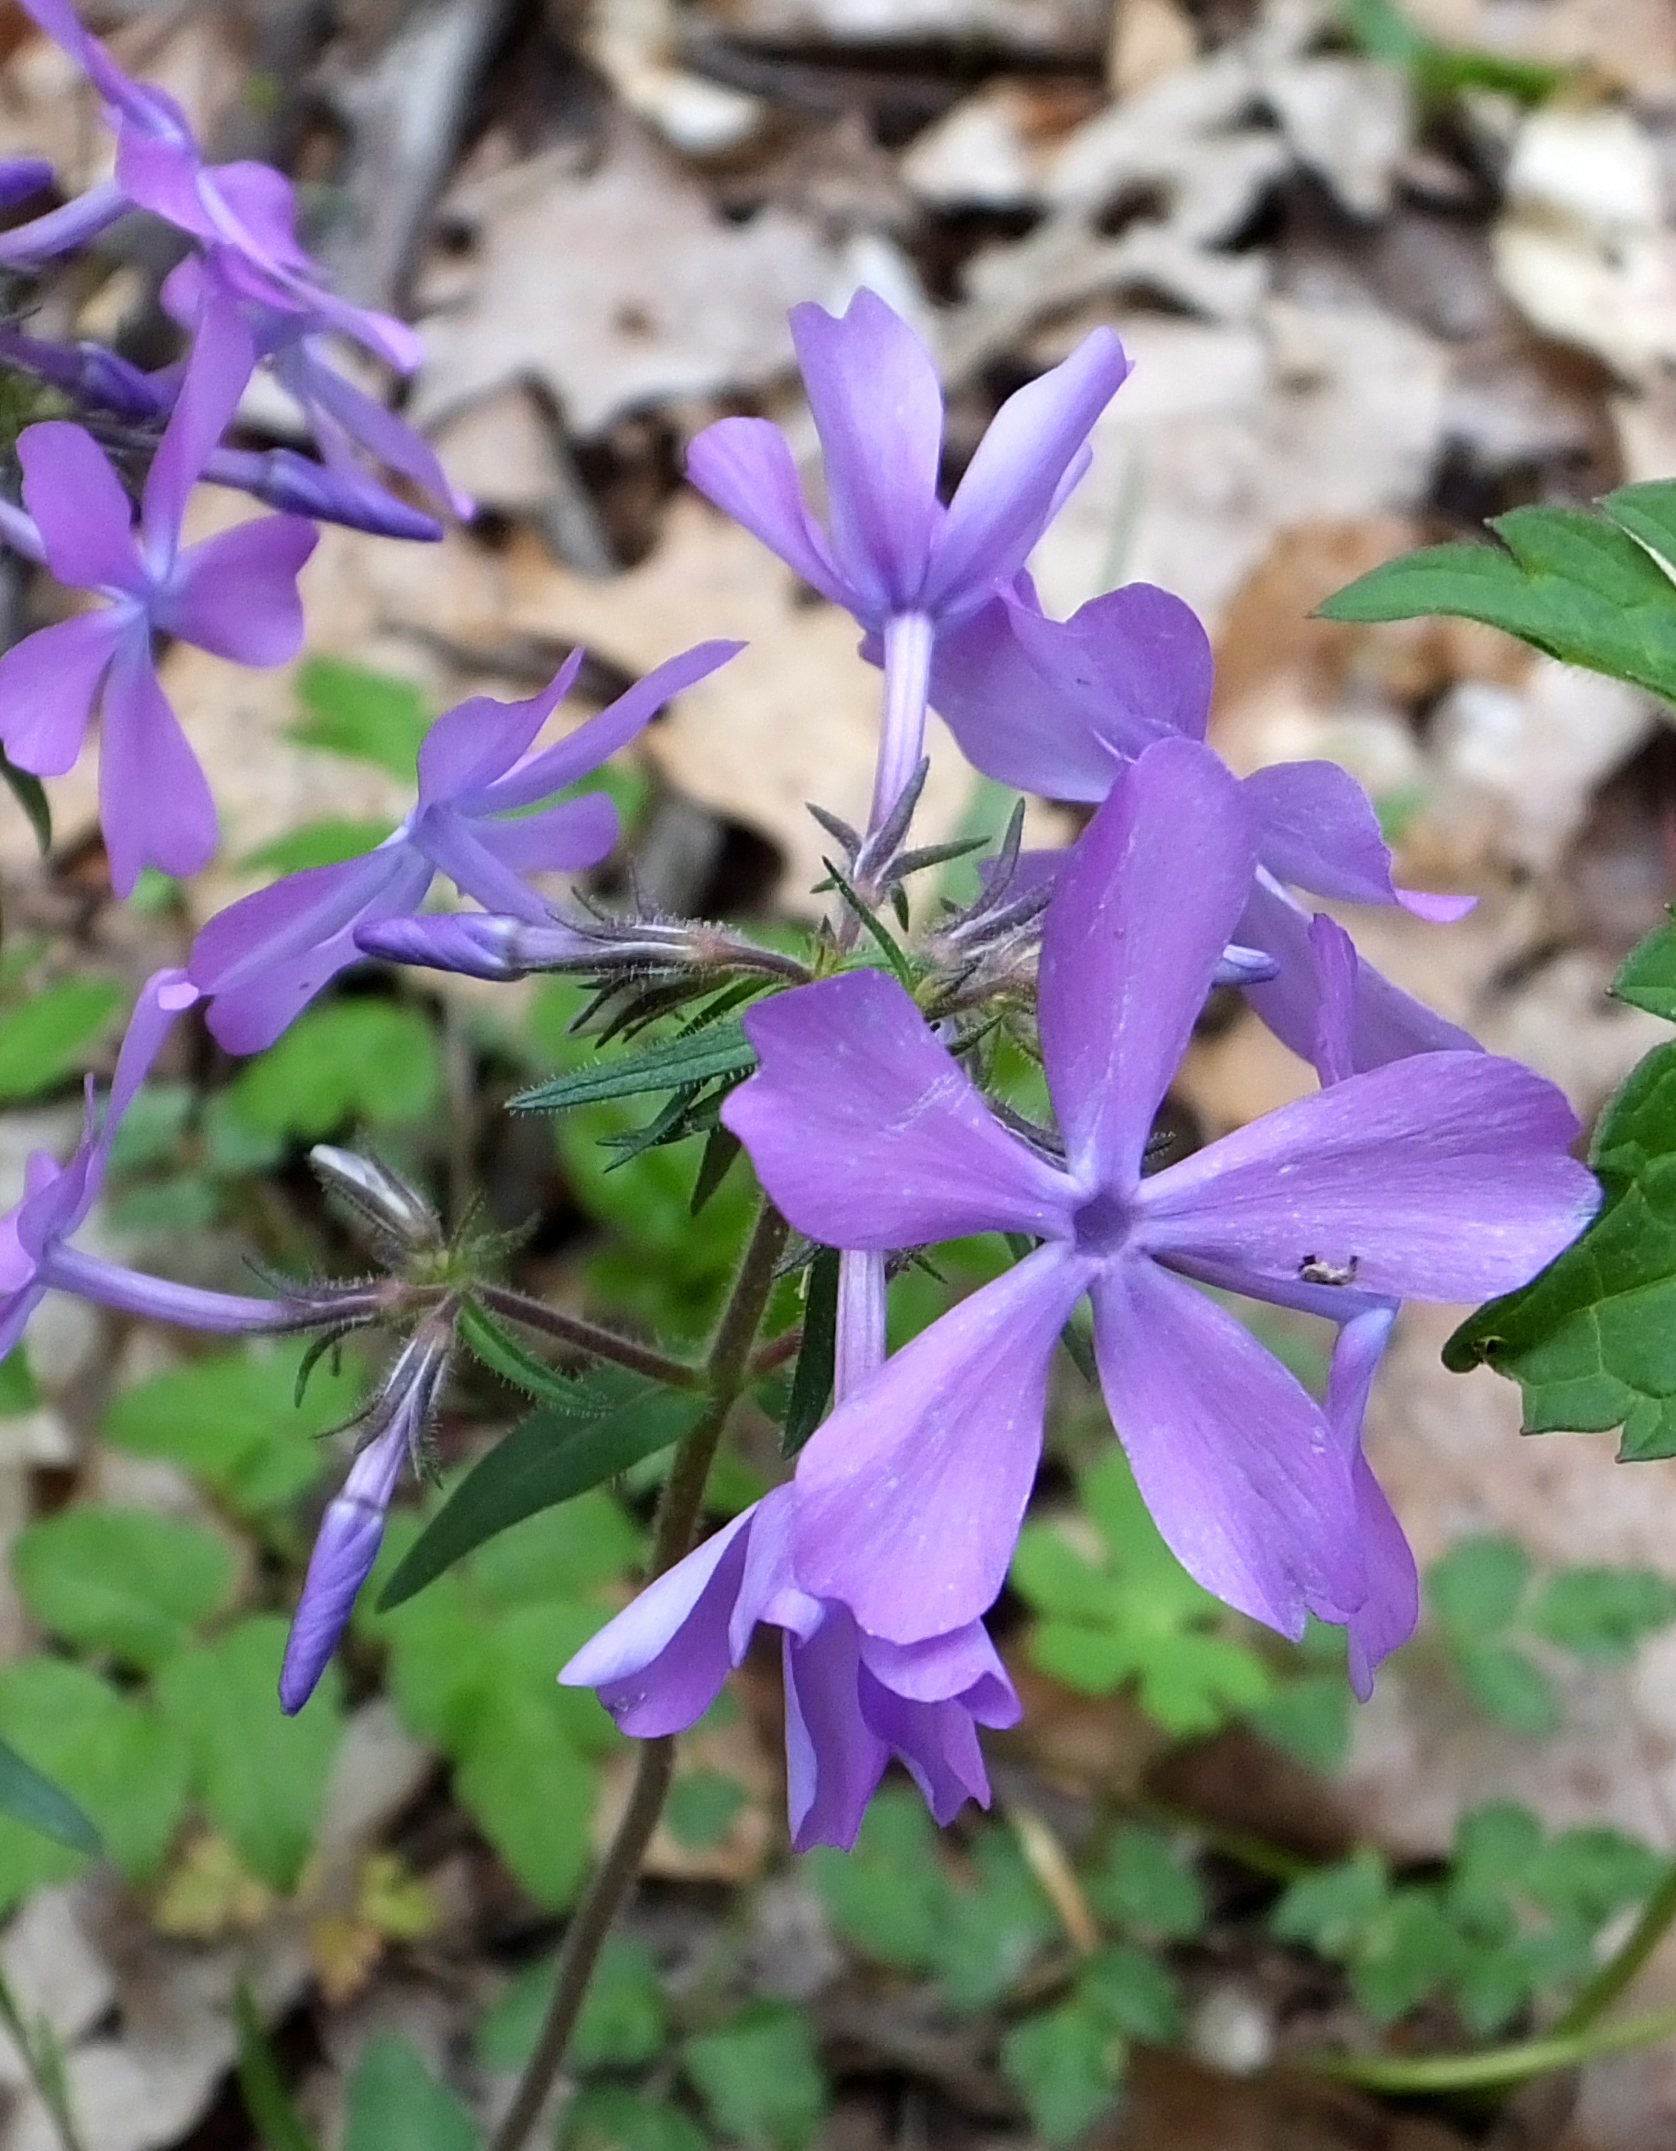 Random Plant: Wild blue phlox | The Life of Your Time